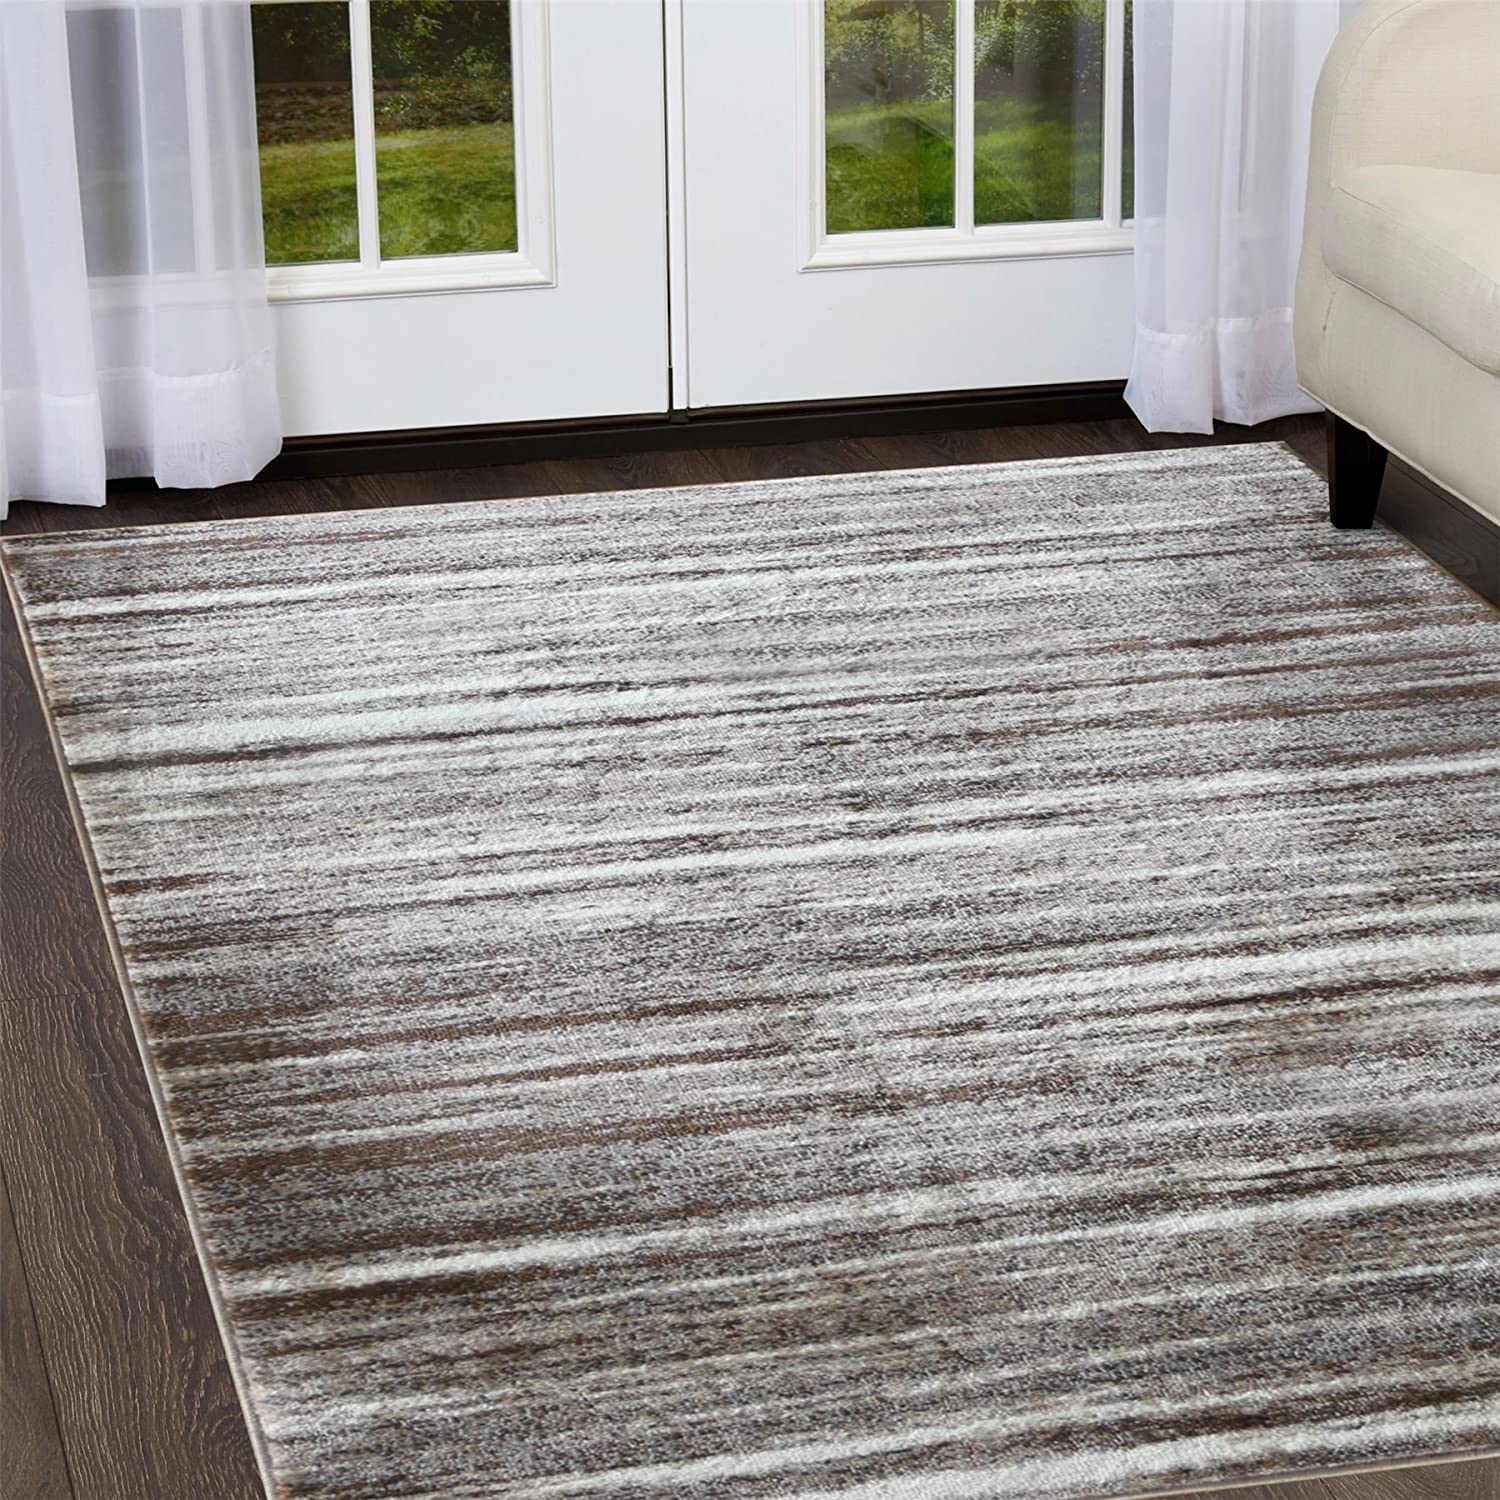 A2z Rug Contemporary Brown Palma 1495 Area Rugs 120x170 Cm 3 9 X5 6 Ft Amazon Co Uk Kitchen Home